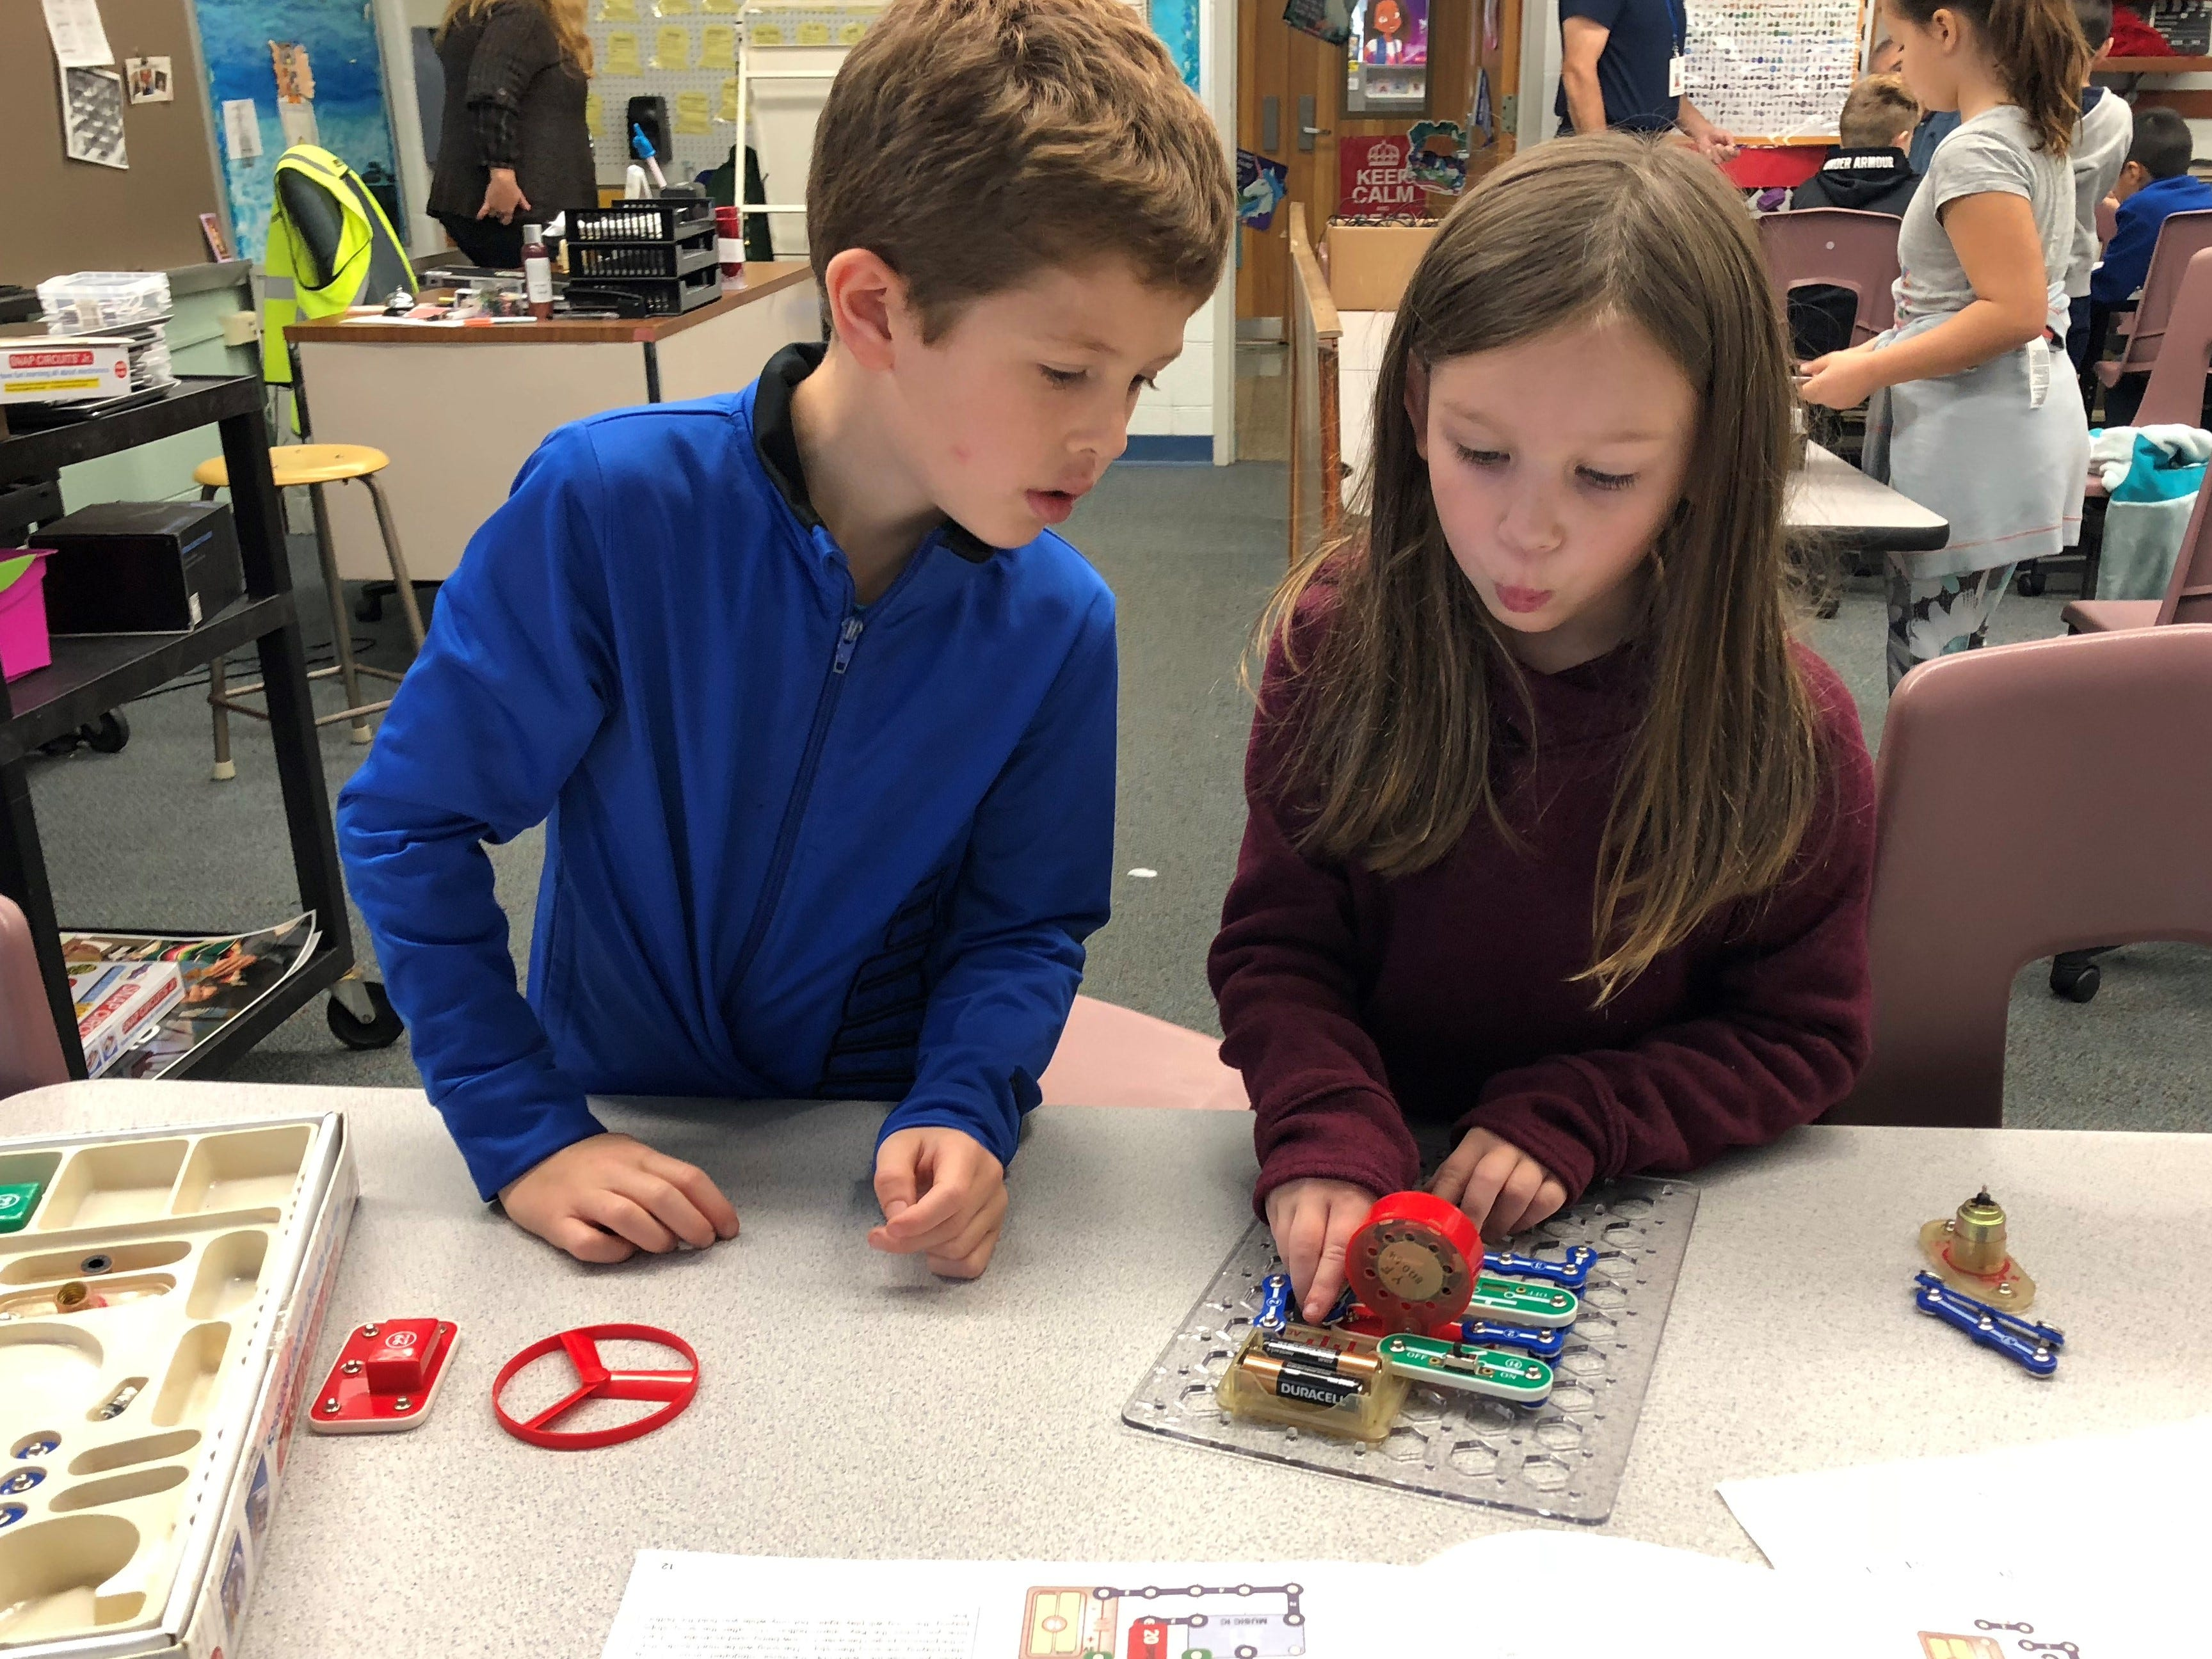 Ryan Feeney, grade 1 student and Claire Connolly, grade 1 student exploring their circuit kits during iBuilders Club.